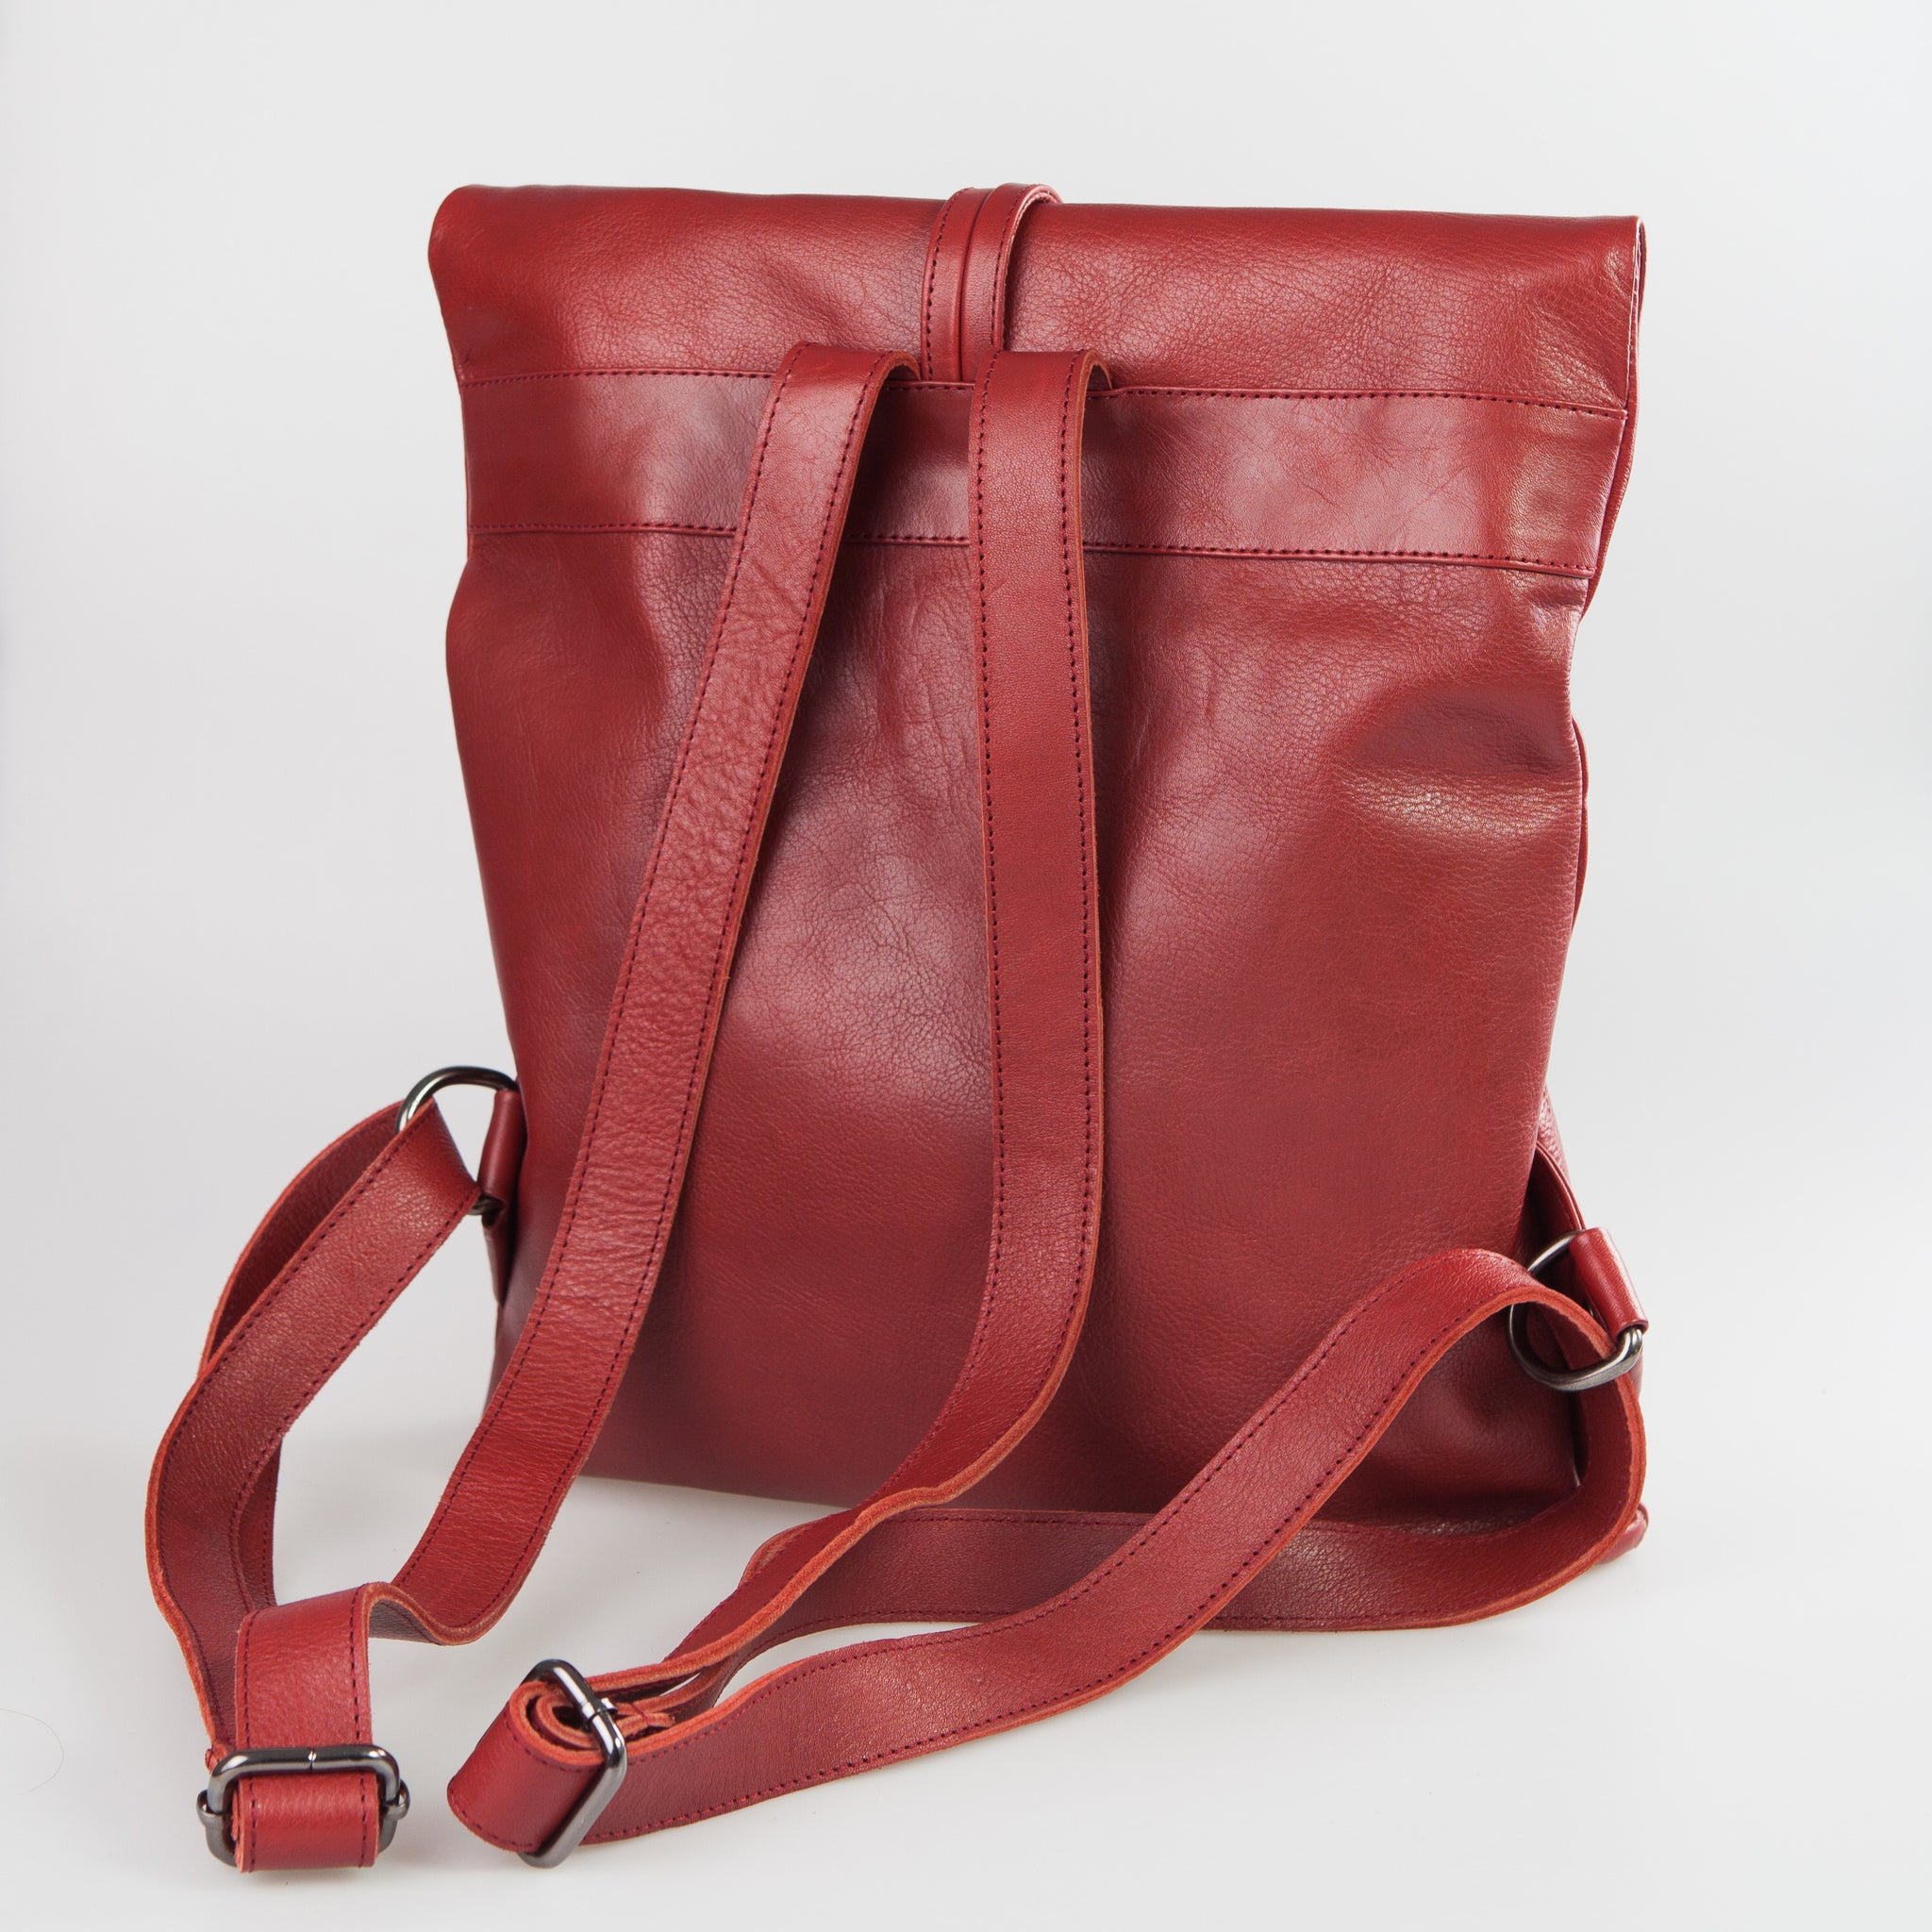 First of June, Shinta, leather bag, vegetable tanned leather